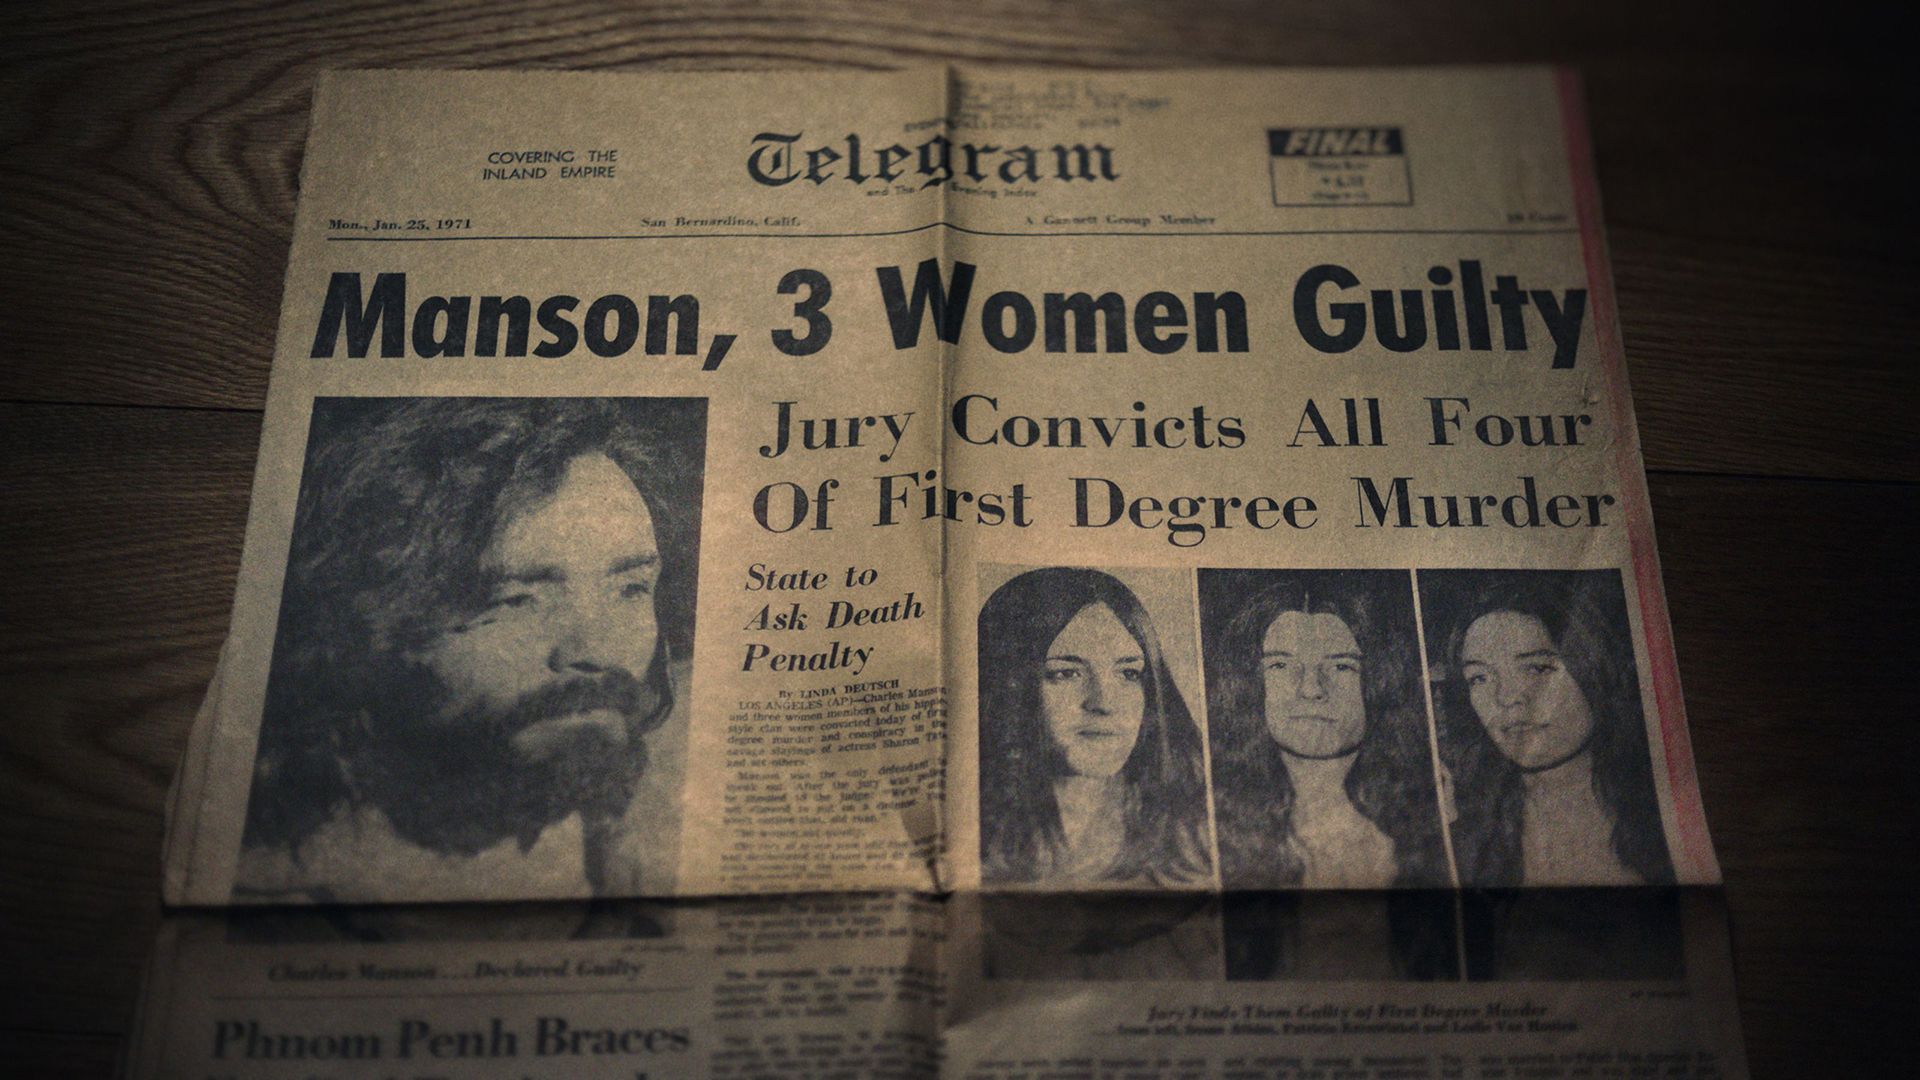 Helter Skelter – An American Myth: Charles Manson – The Dark Side of the Sixties Counterculture